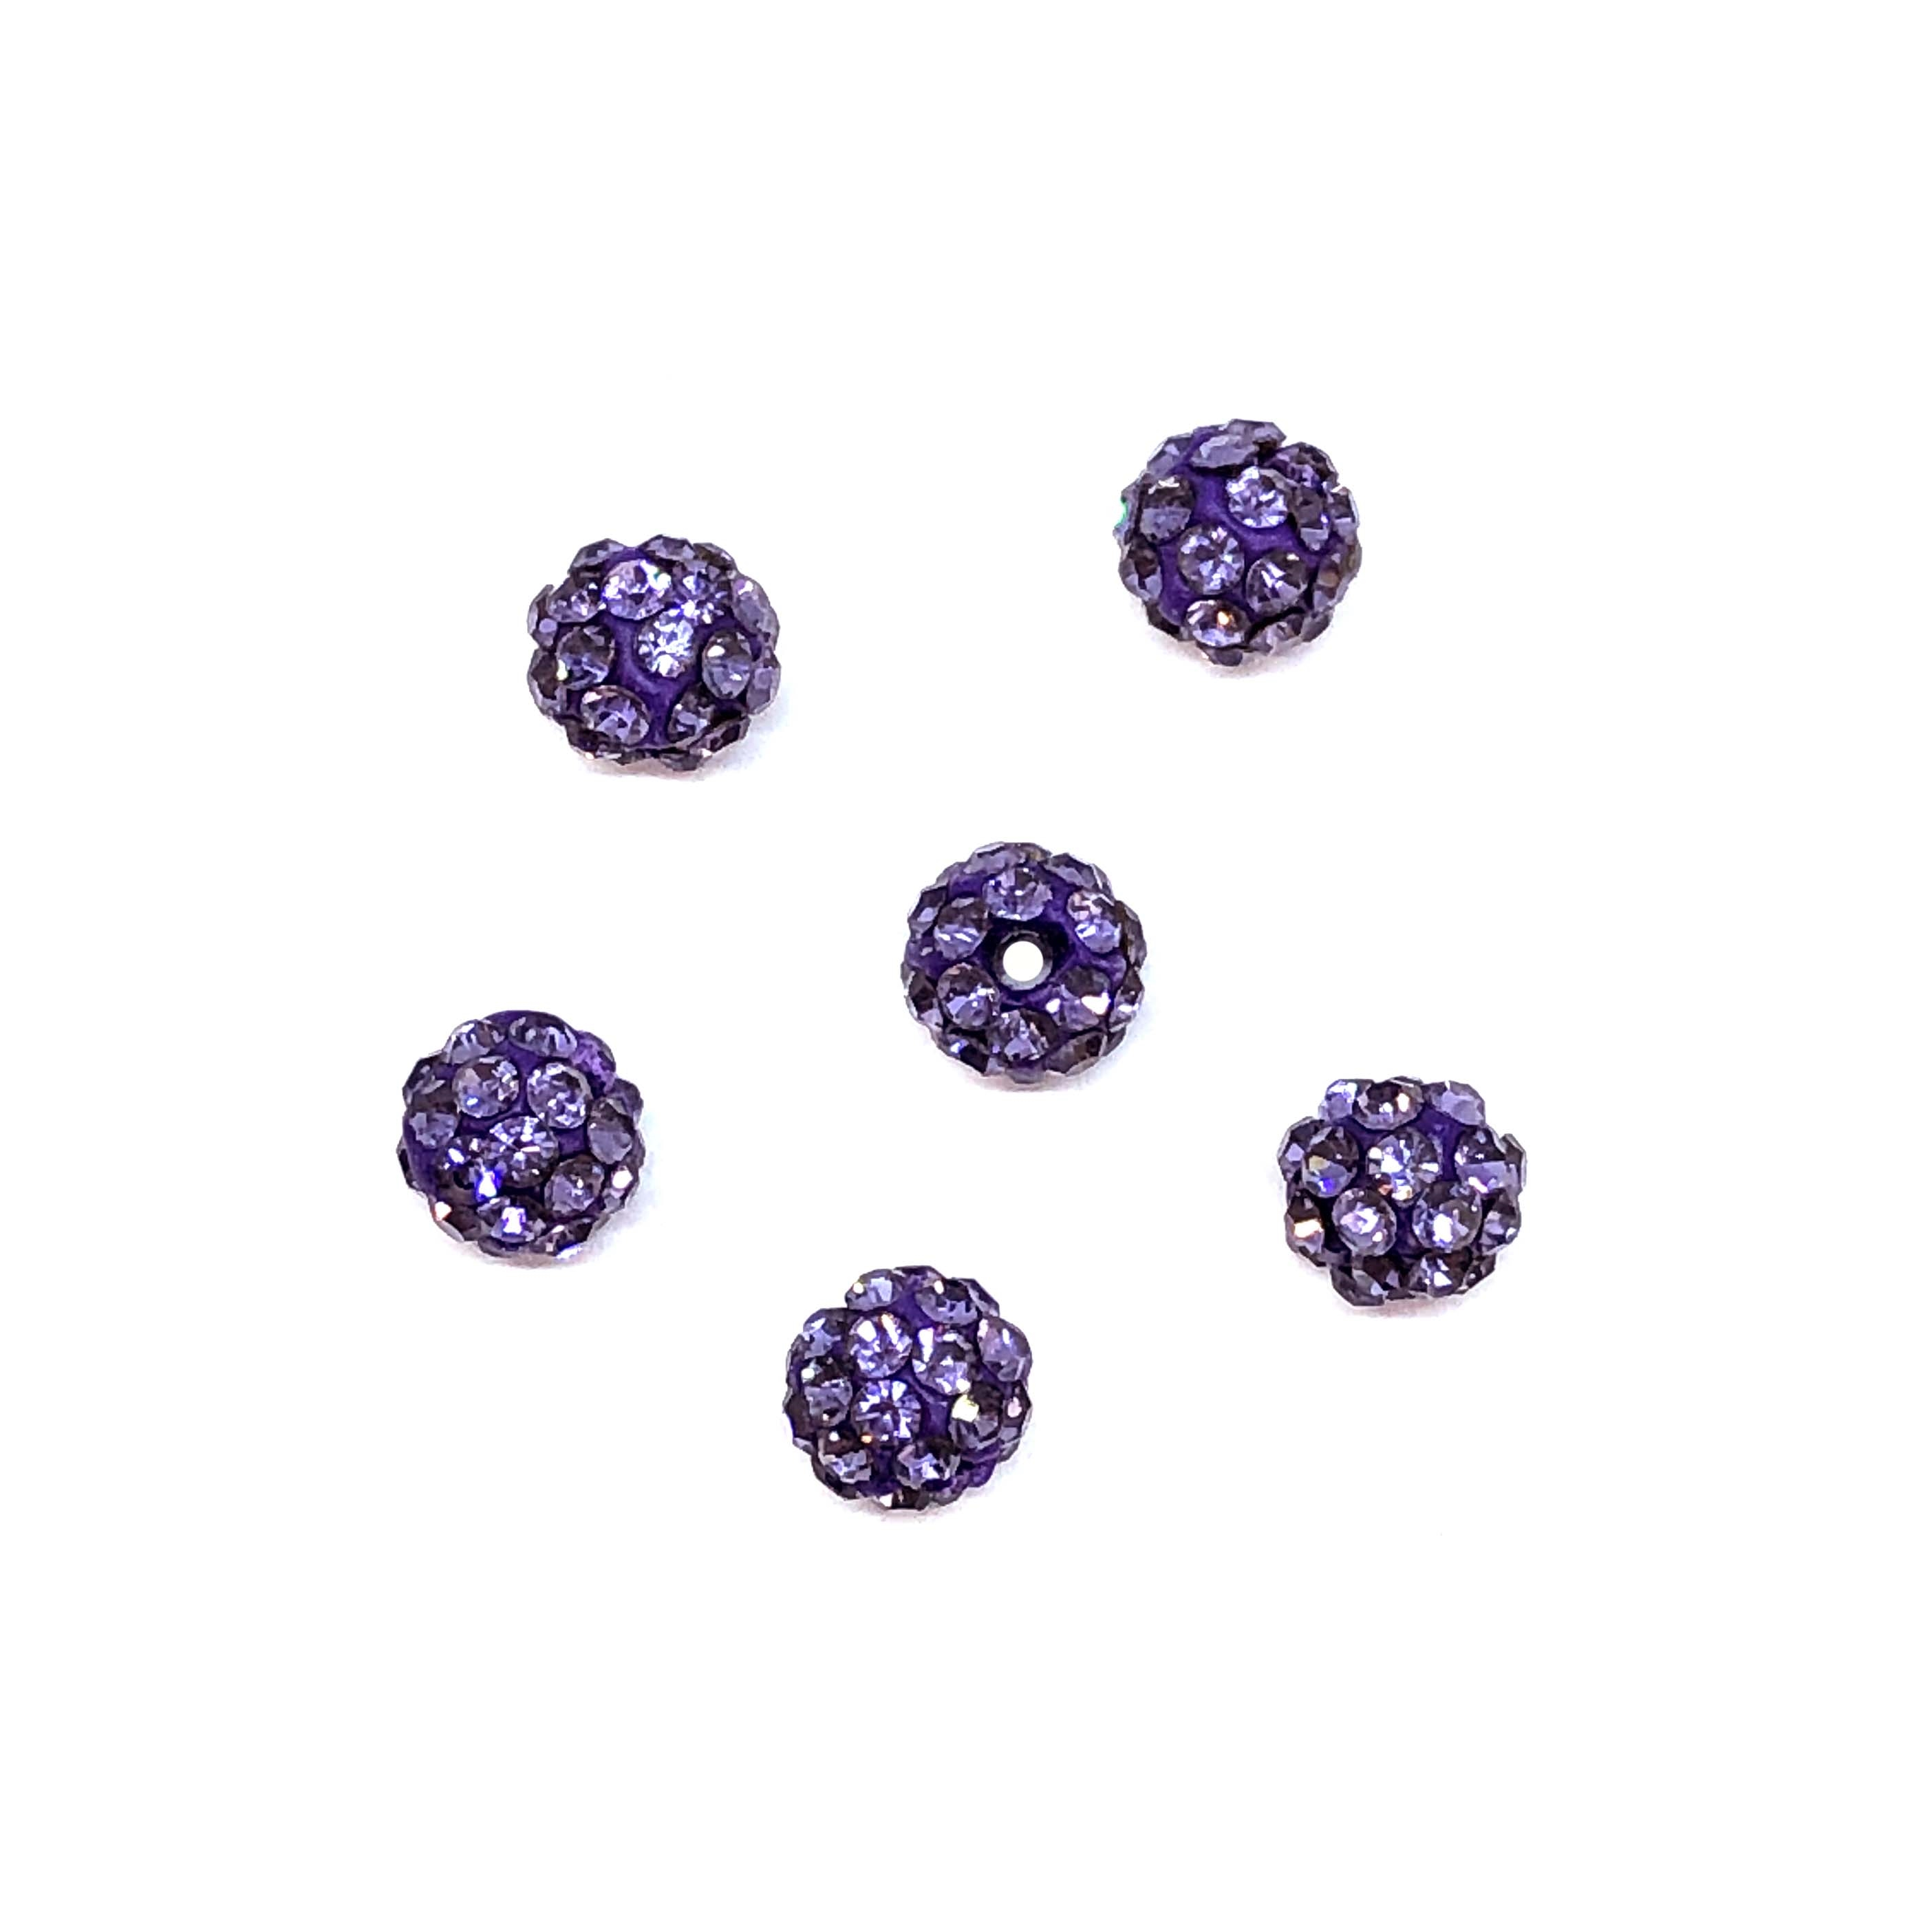 Rhinestone Pave Beads, purple Beads, 6mm, 0669, ball beads, glass beads, crystal stones, round beads, crystal beads, faceted, bead, glass, b'sue boutiques, jewelry making, jewelry findings, vintage supplies, tanzanite